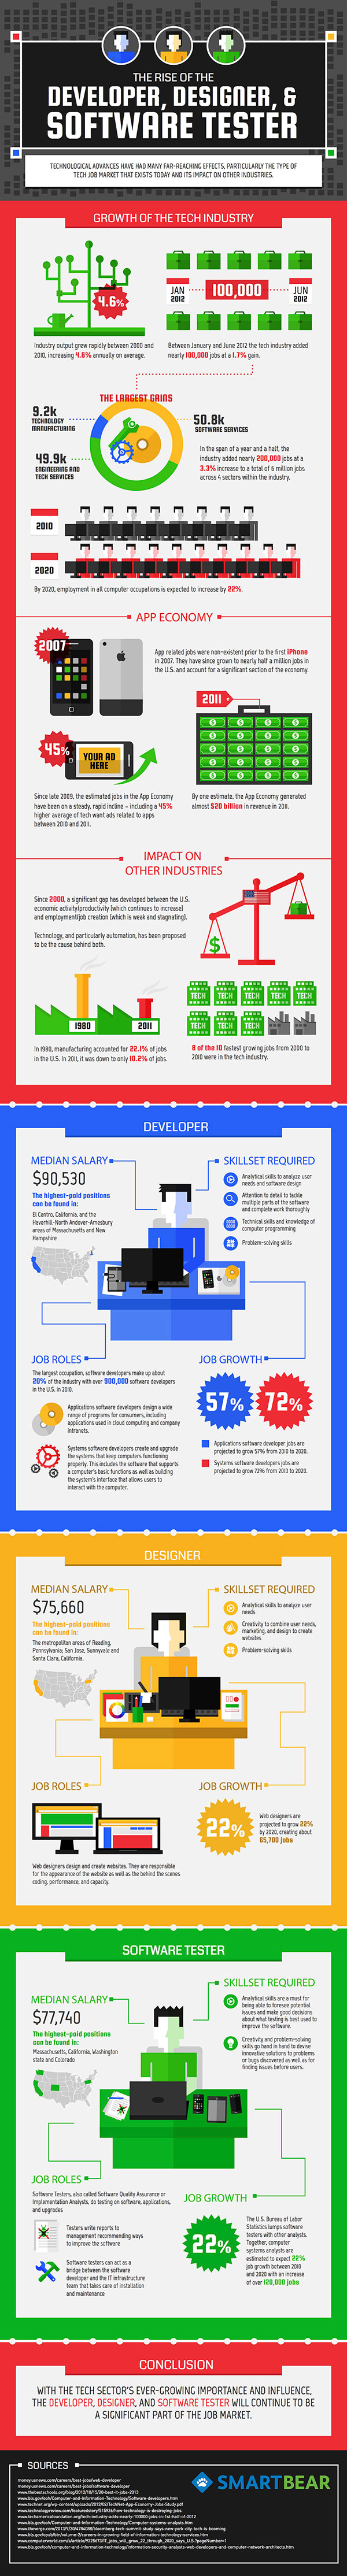 The Rise of the Developer, Designer, and Software Tester